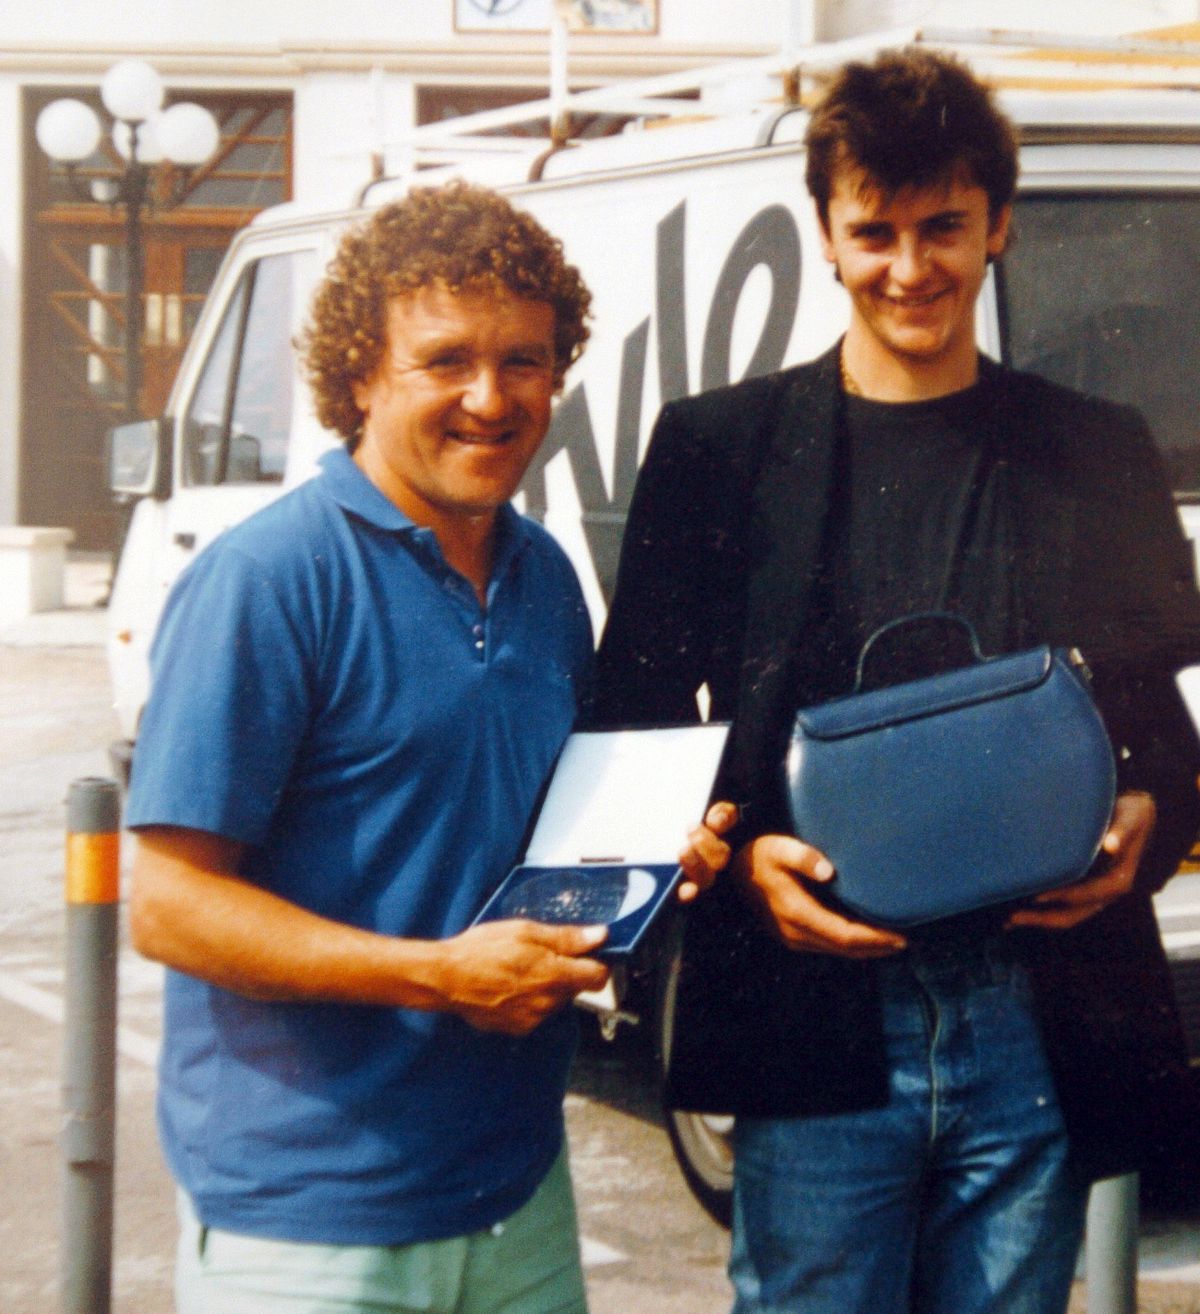 With a young Joe Pasquale in 1989